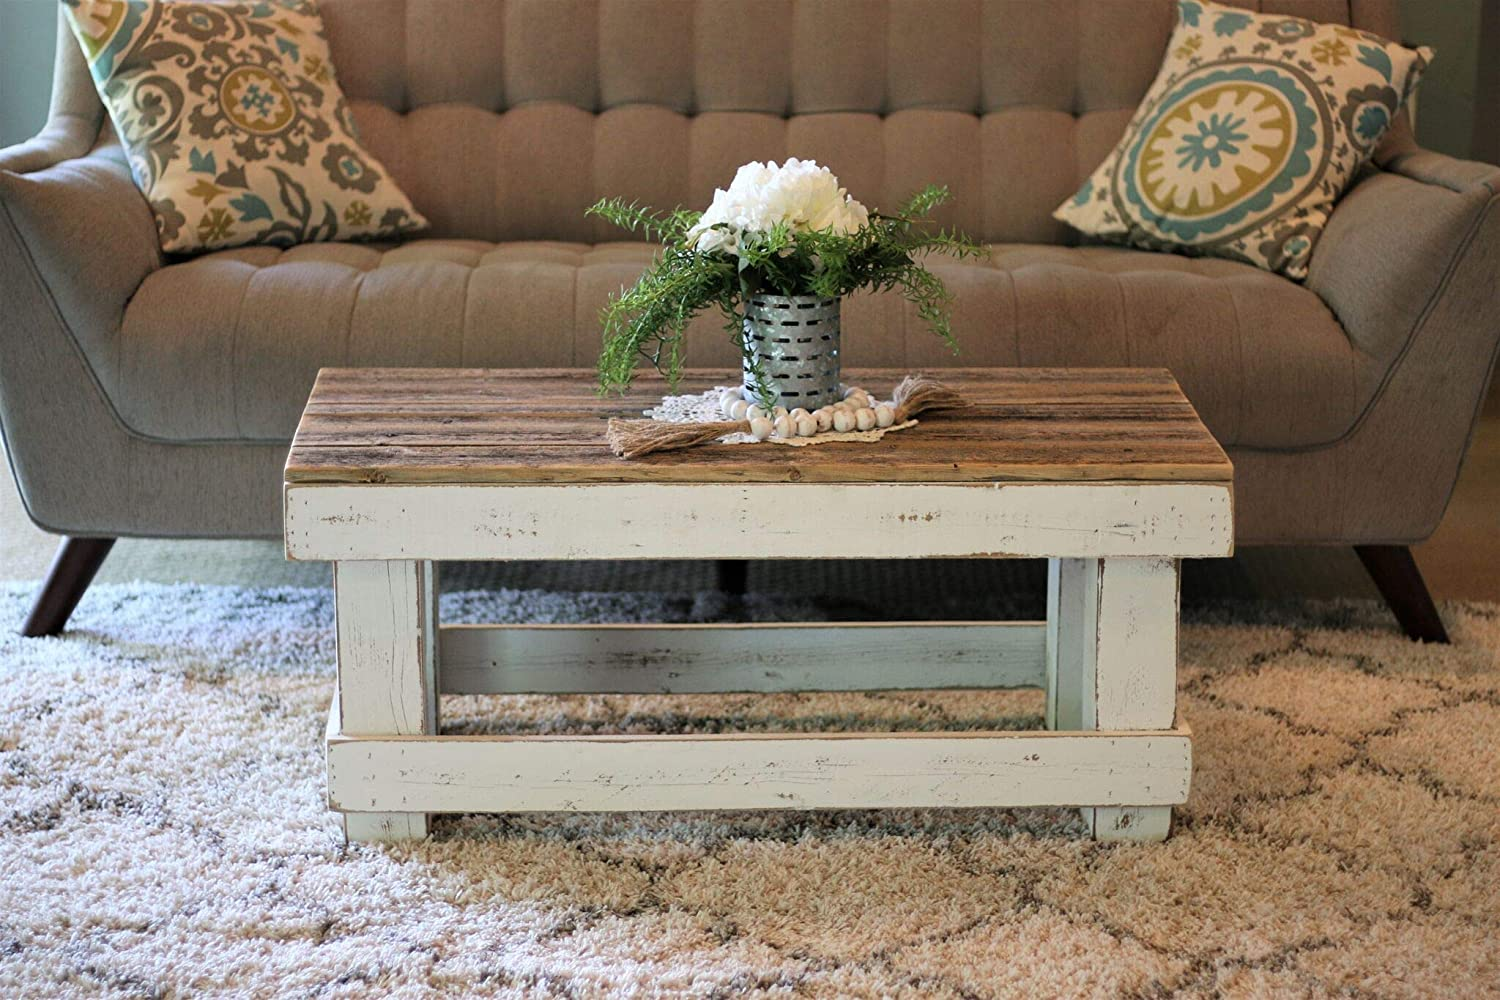 Max 89% OFF Ranking TOP15 White Combo Coffee Table